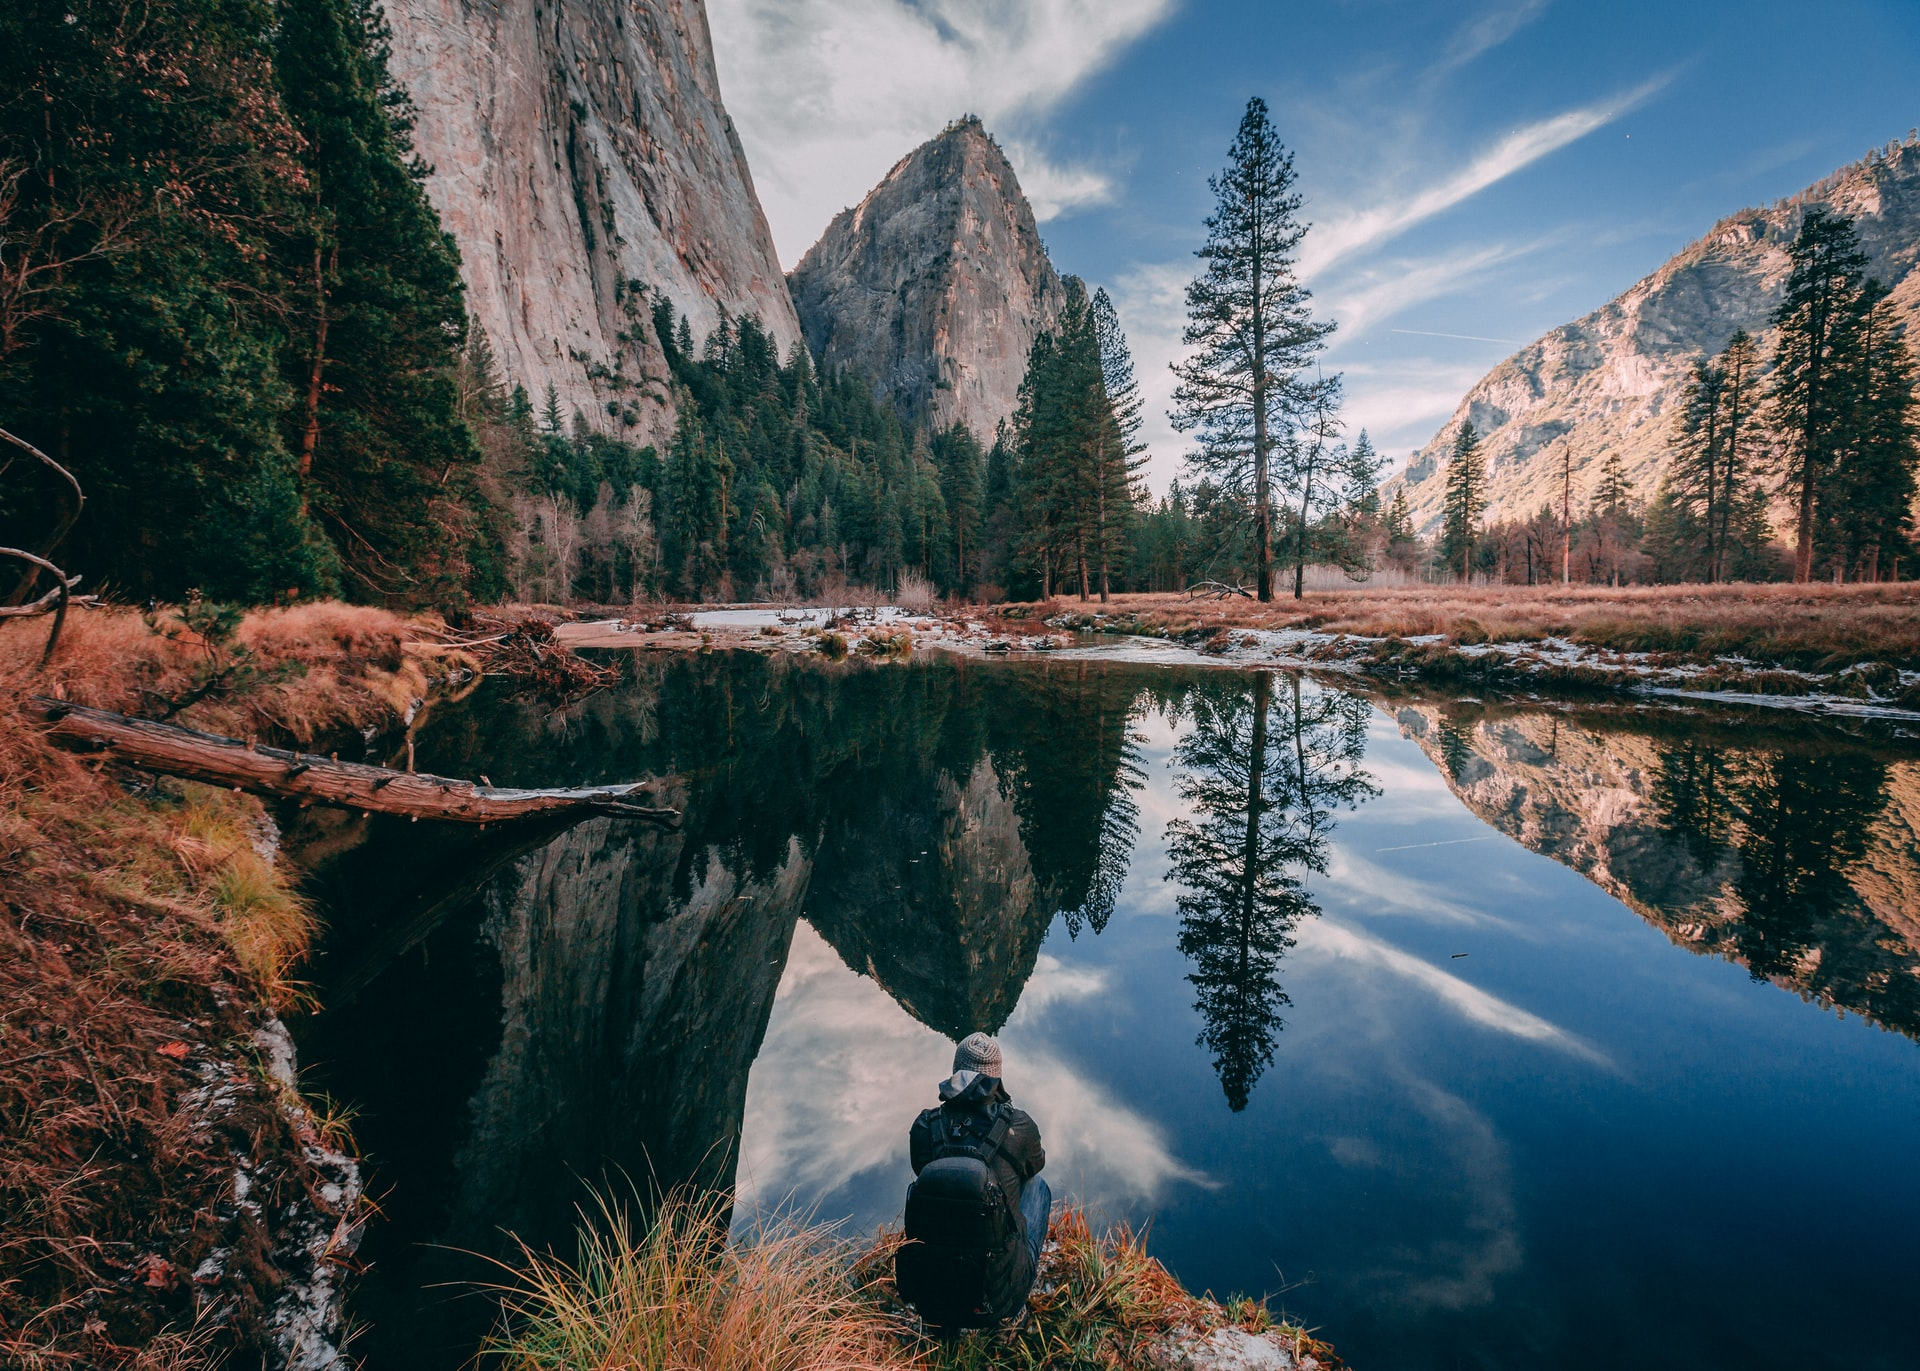 John Muir Quotes in natural landscape